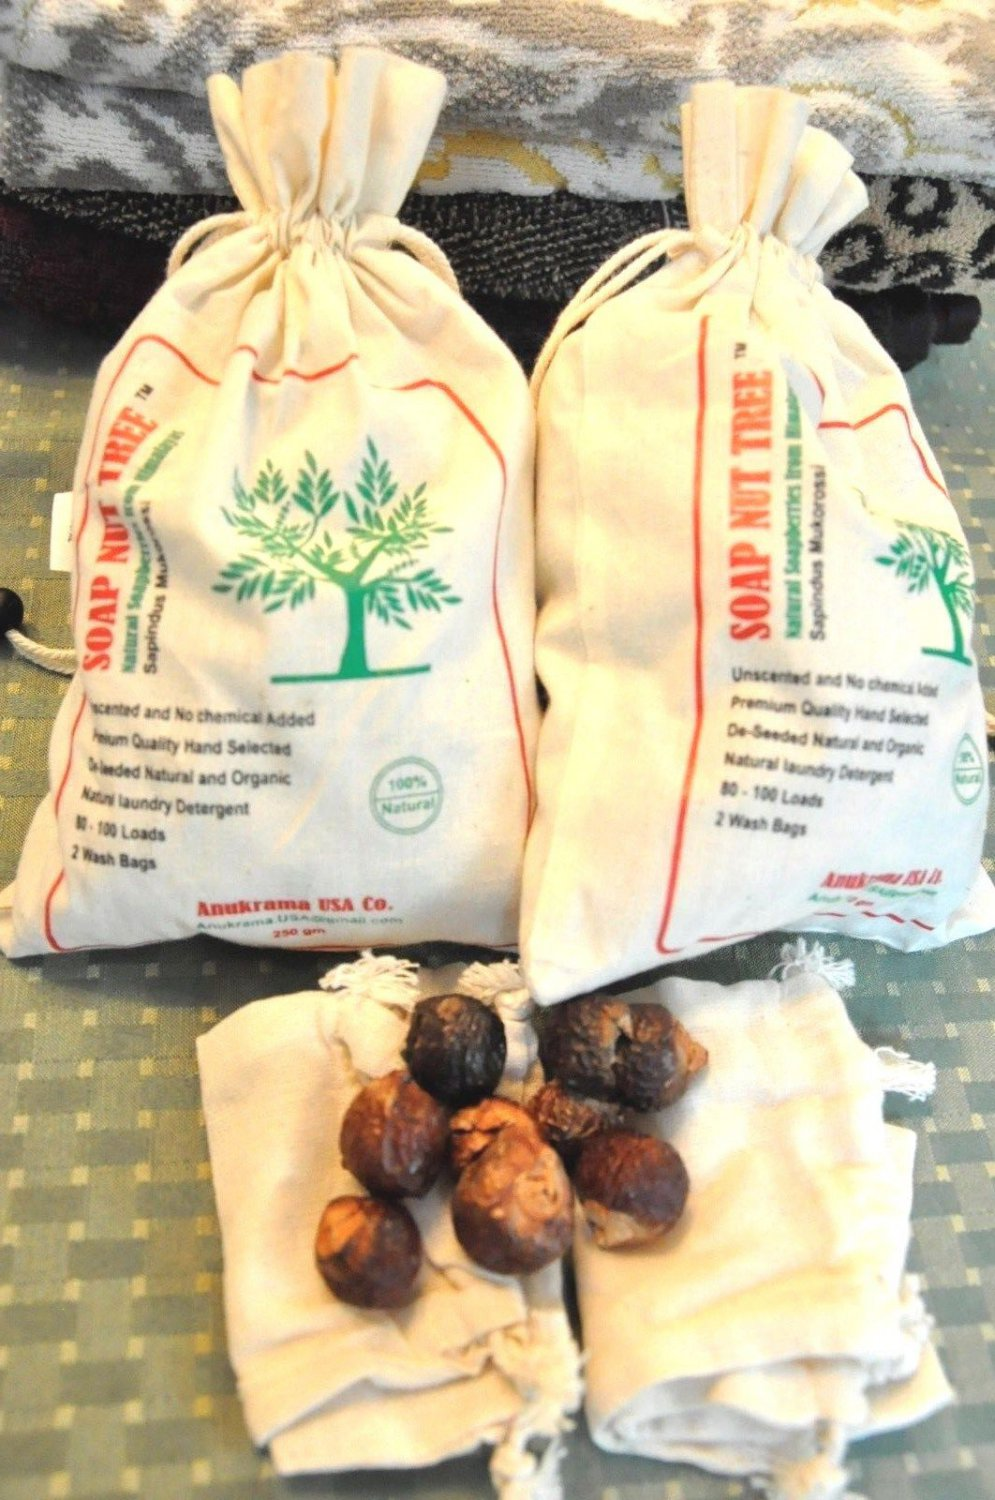 SoapNut organic berries natural chemical free laundry detergent 1.1lbs also can be used to wash hair